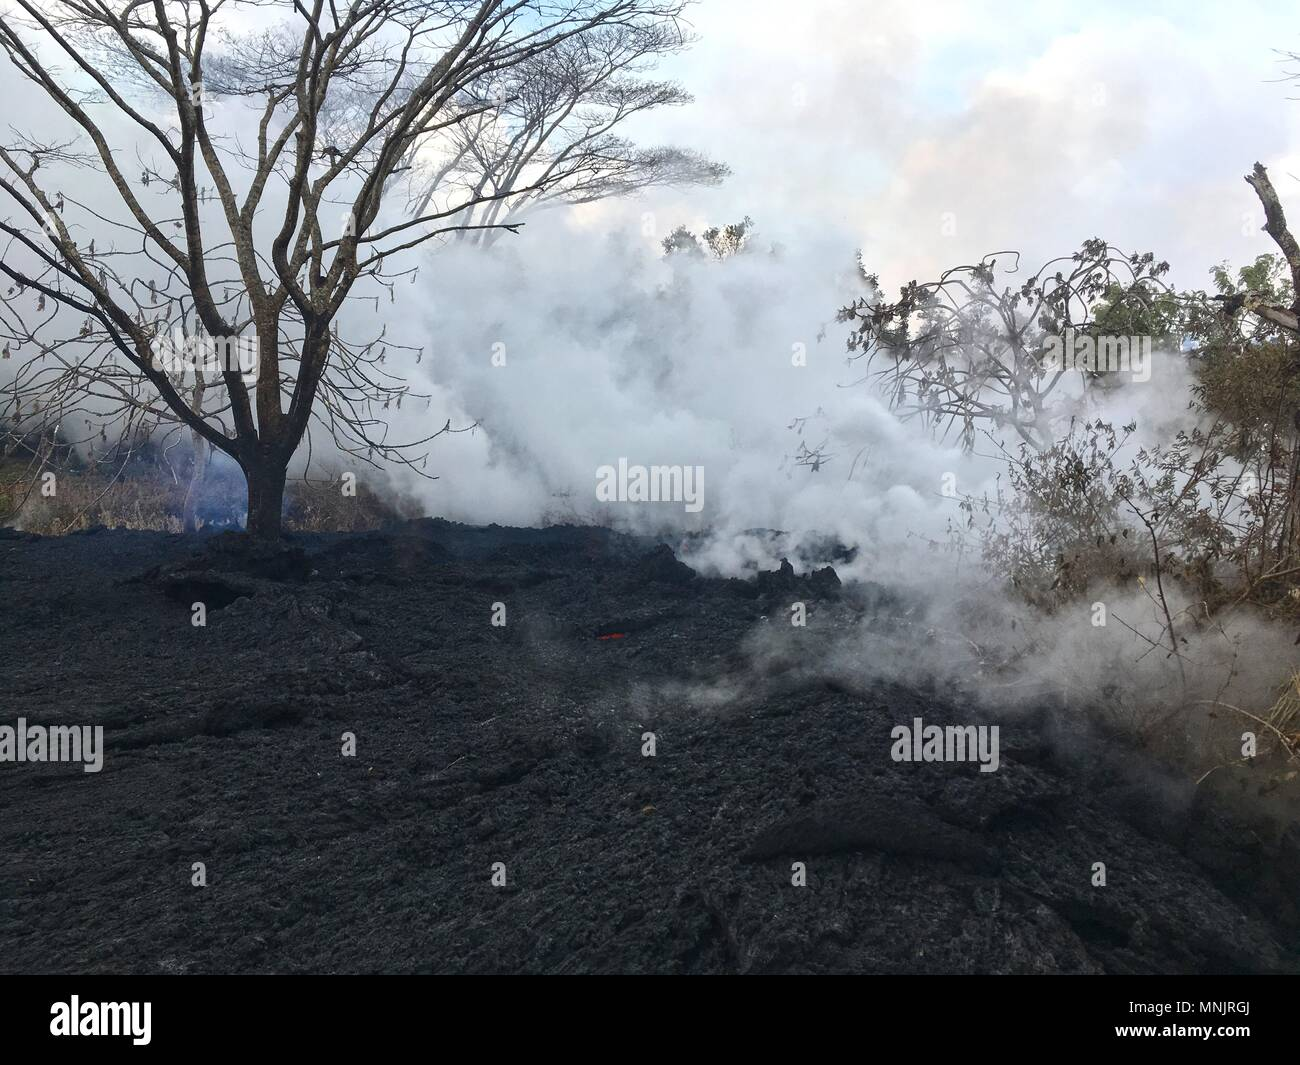 Lava and poisonous sulfur dioxide plumes rise from fissures along the eastern rift caused by the eruption of the Kilauea volcano May 16, 2018 in Pahoa, Hawaii. The recent eruption continues destroying homes, forcing evacuations and spewing lava and poison gas on the Big Island of Hawaii.Stock Photo